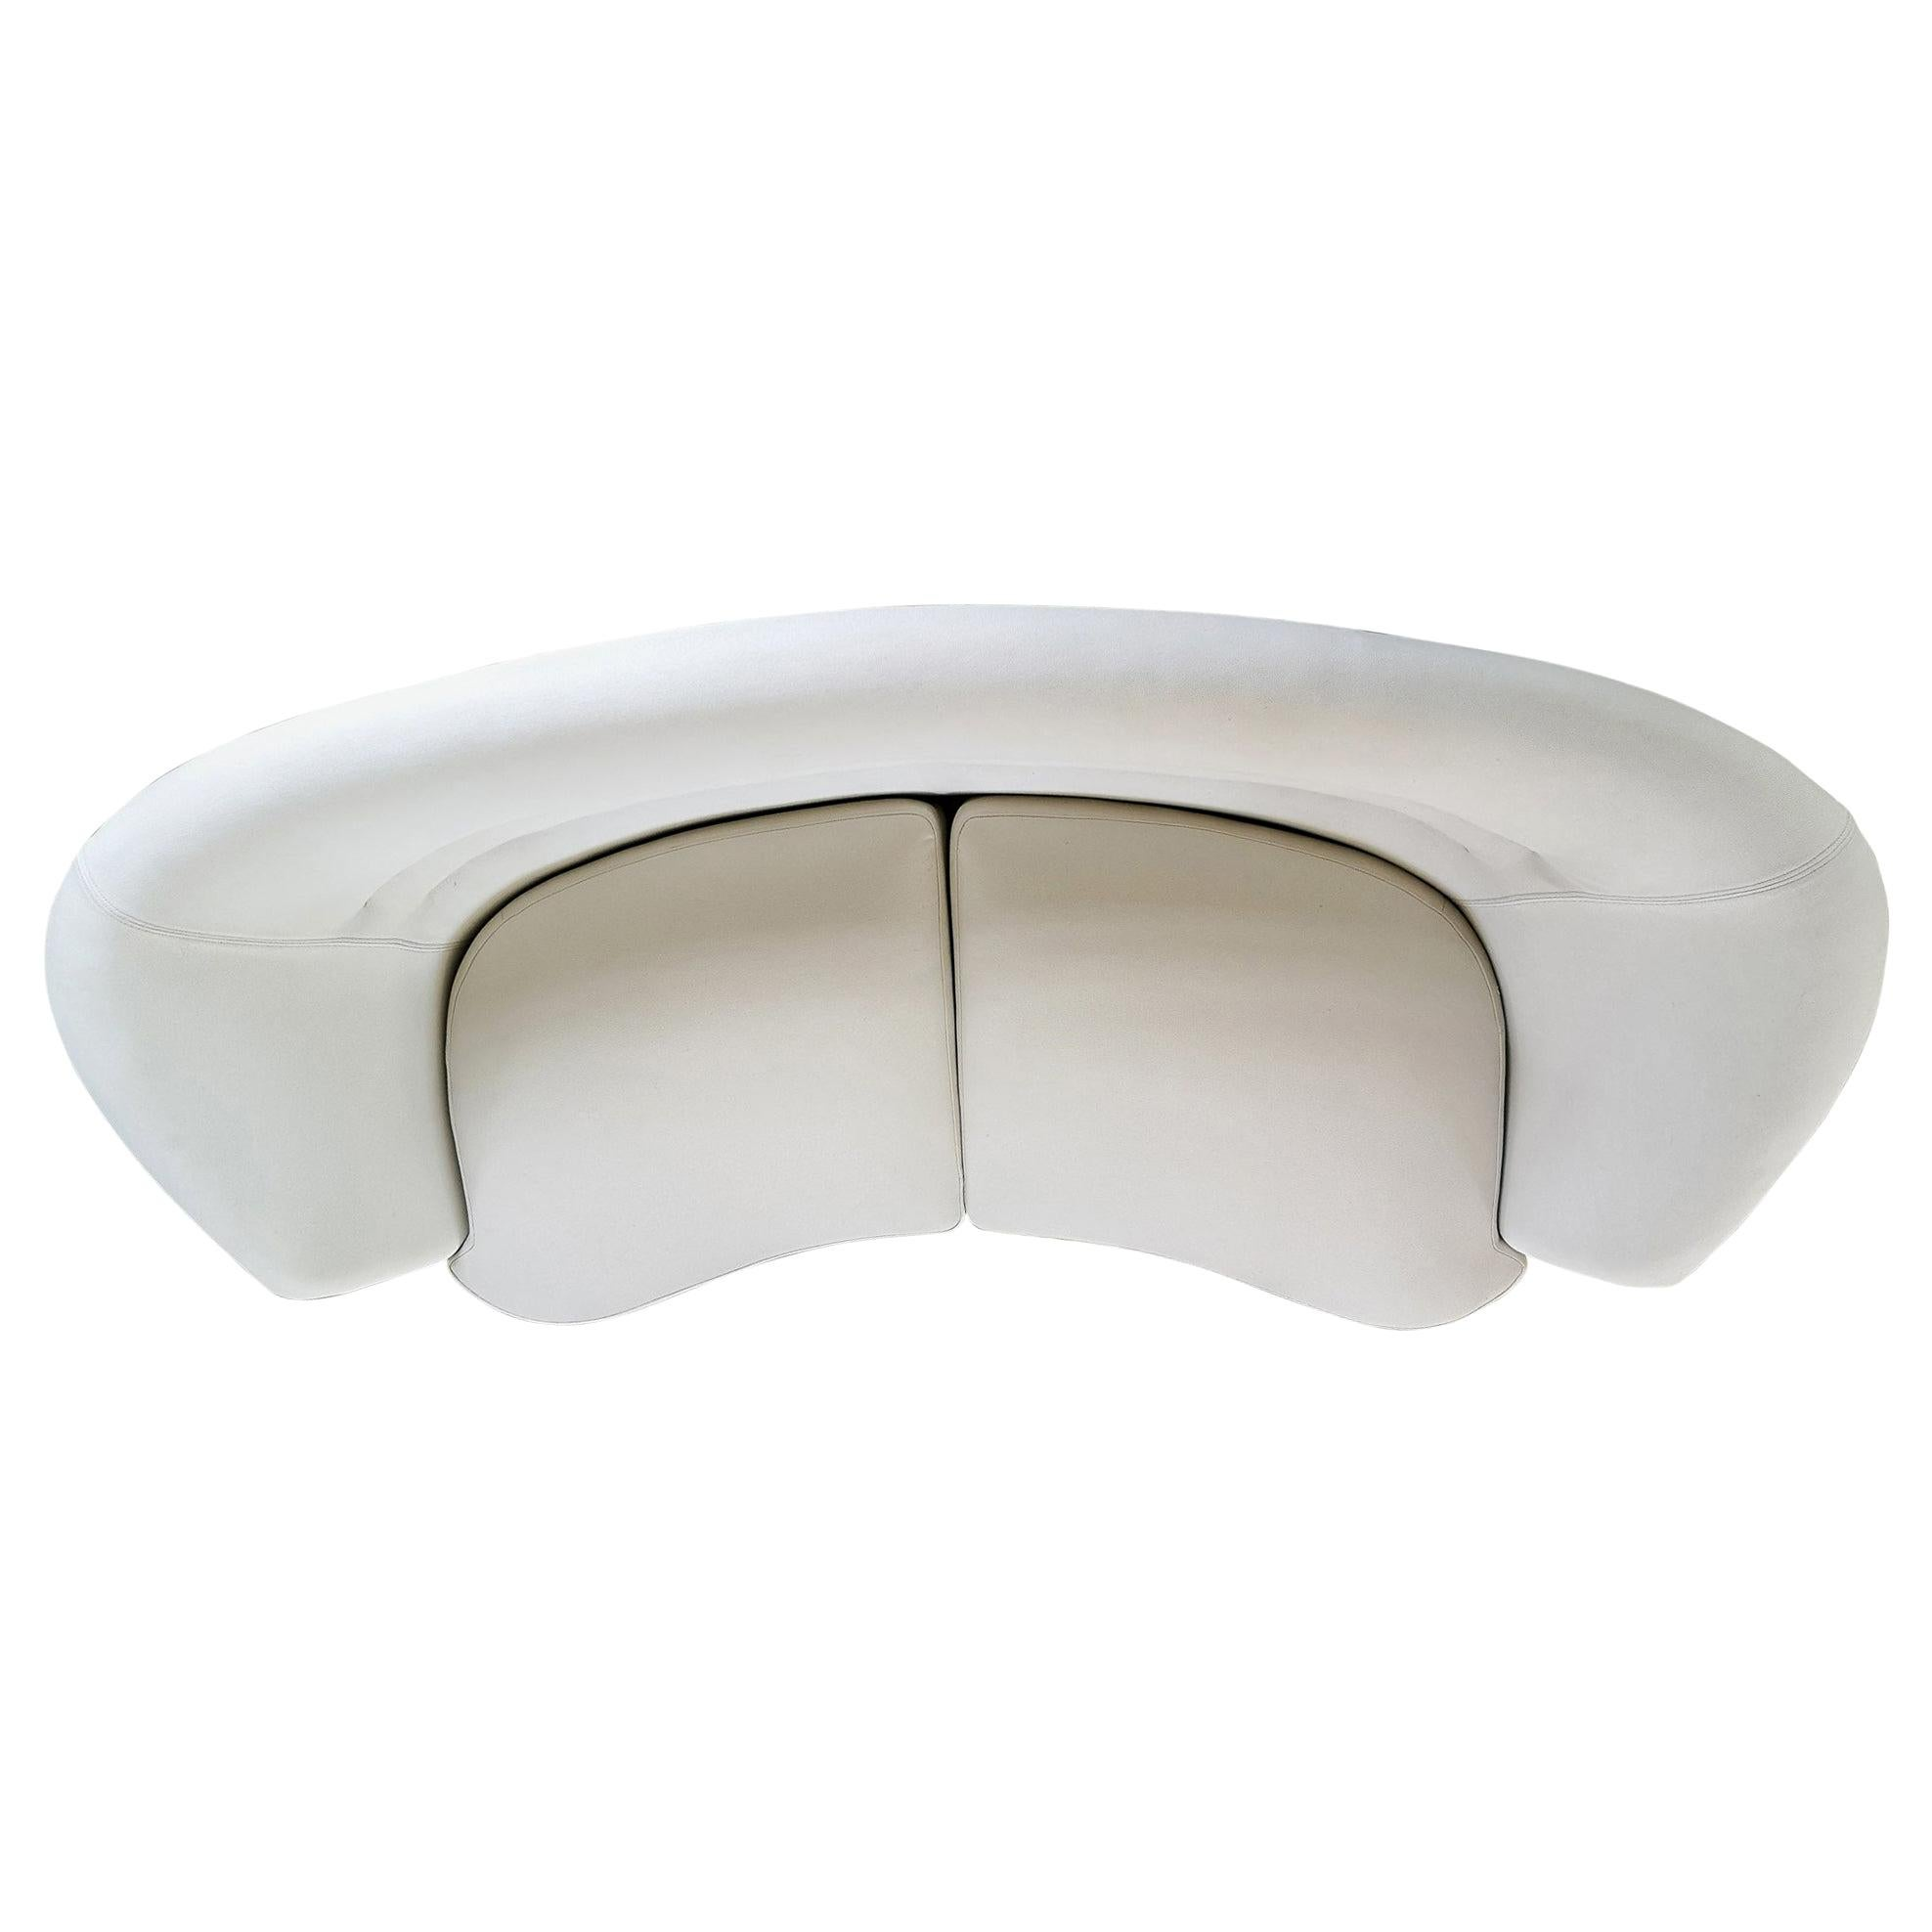 Midcentury Curved Sofa and Chair OPE Sweden, 1950s